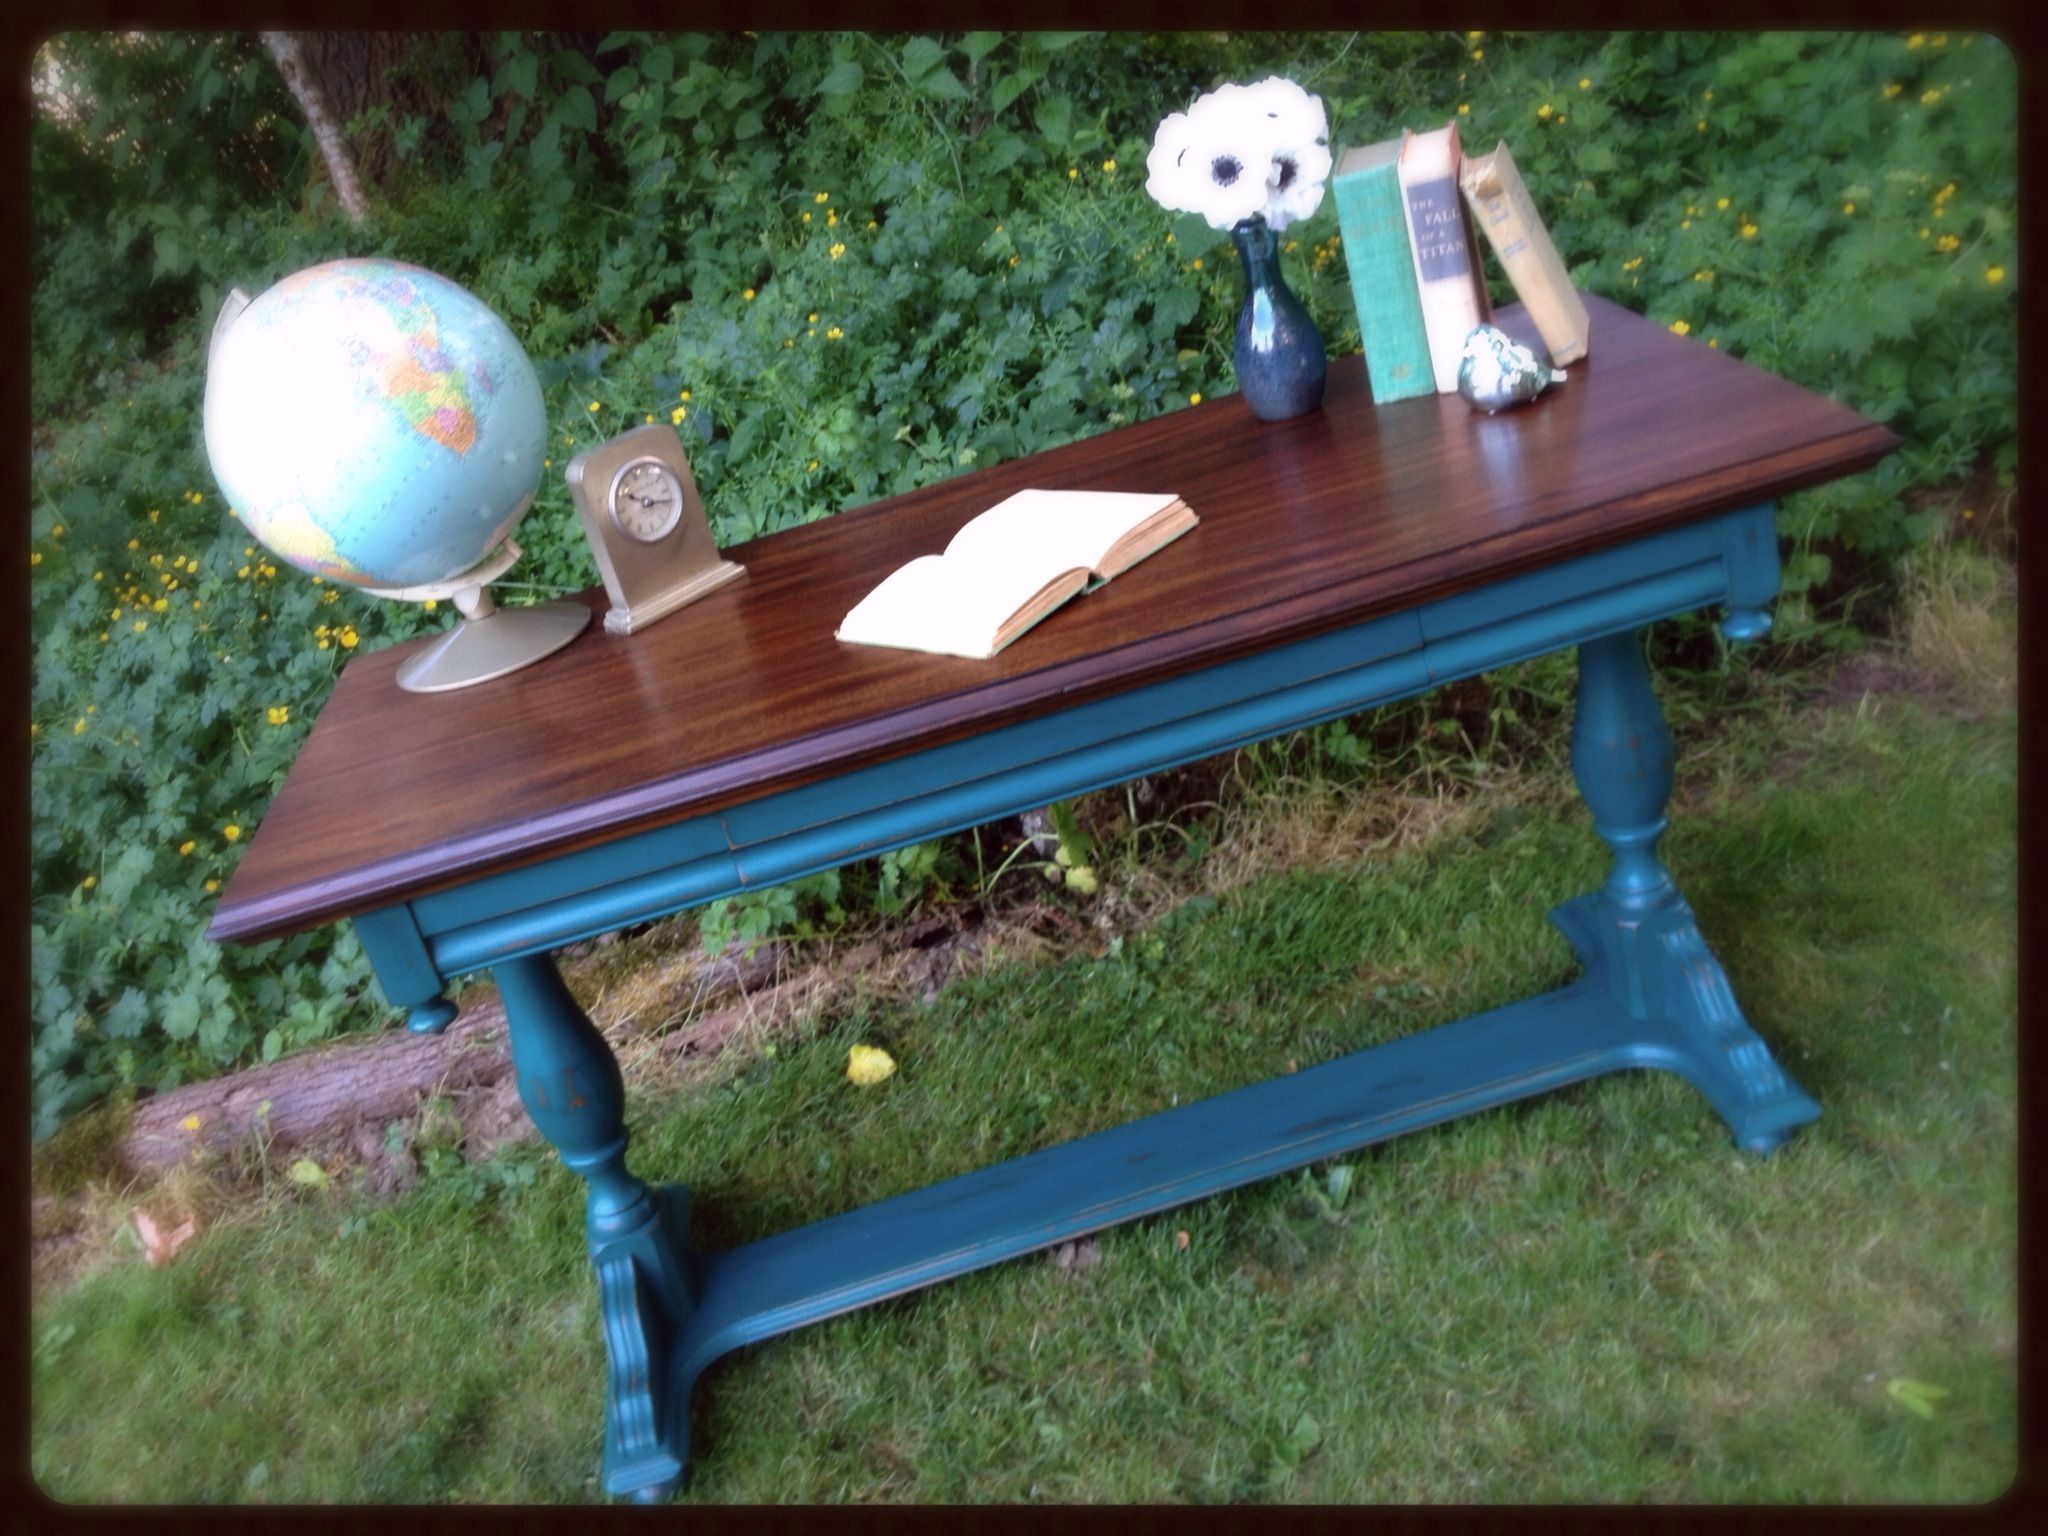 Antique Library Table painted in a peacock blue with dark stained wood top   For sale. 14 best Library tables images on Pinterest   Library table